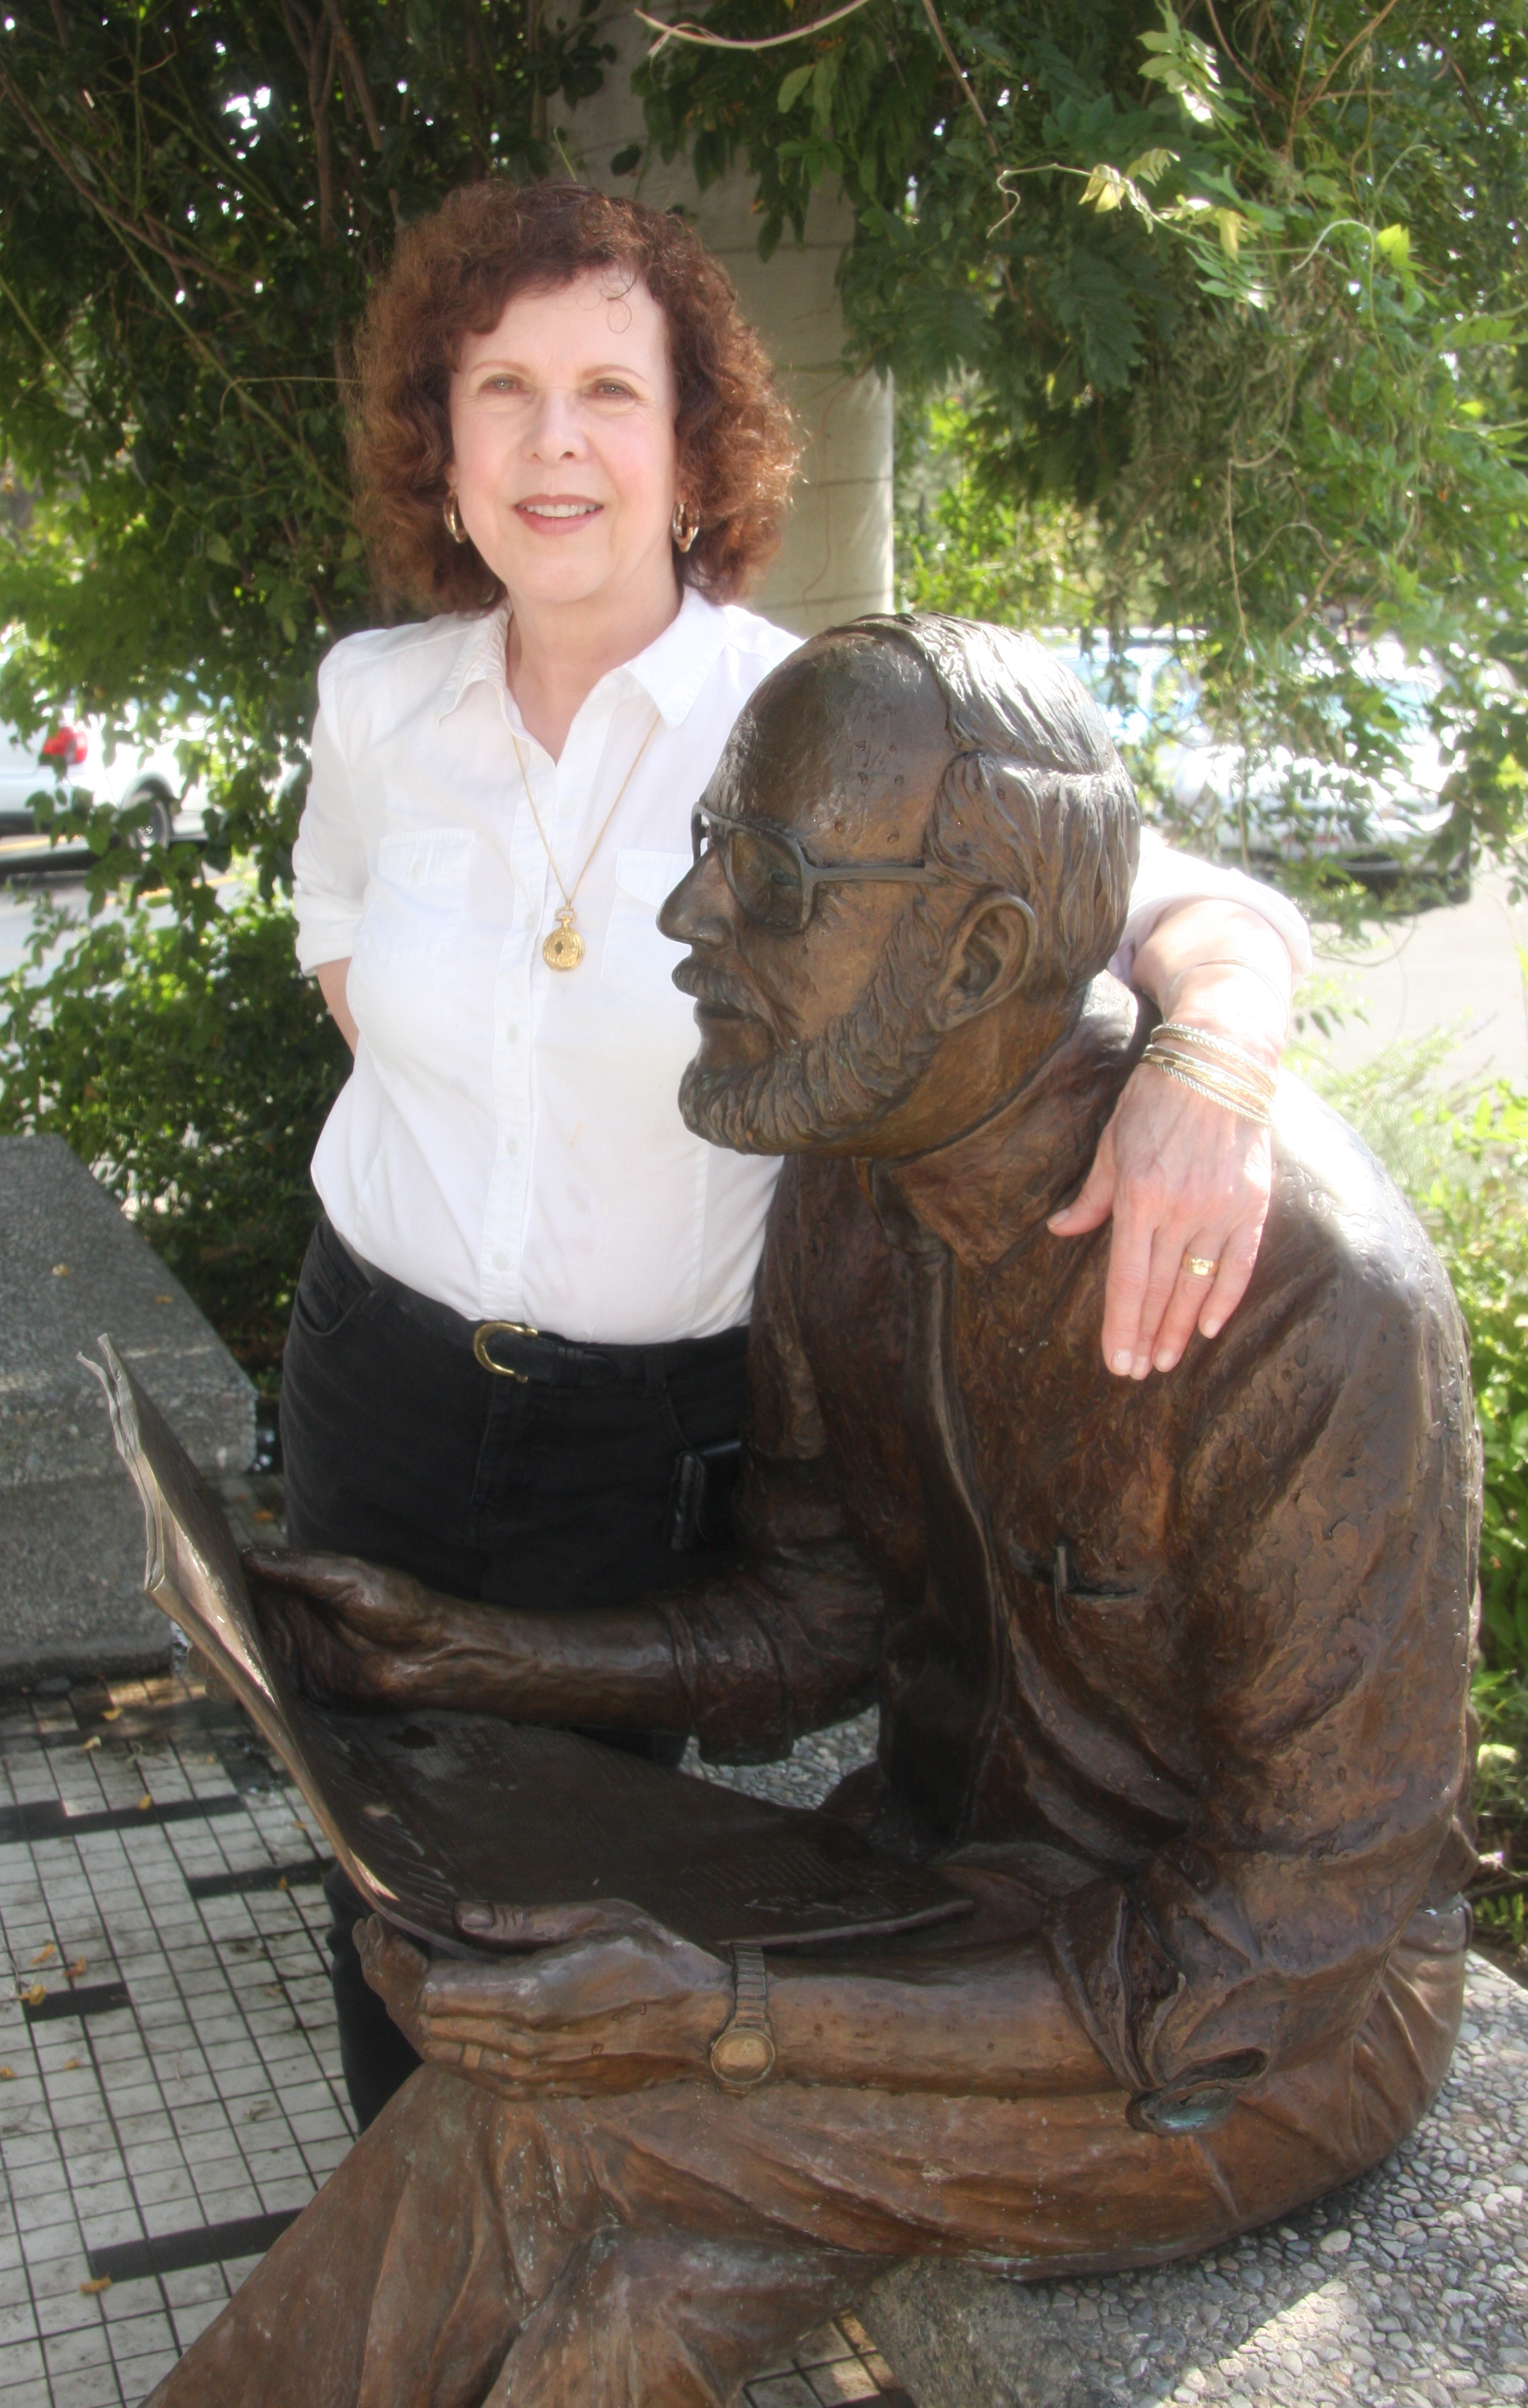 Sculpting Lewiston: Sharon Taylor Hall picked as featured artist for Downtown Art Walk